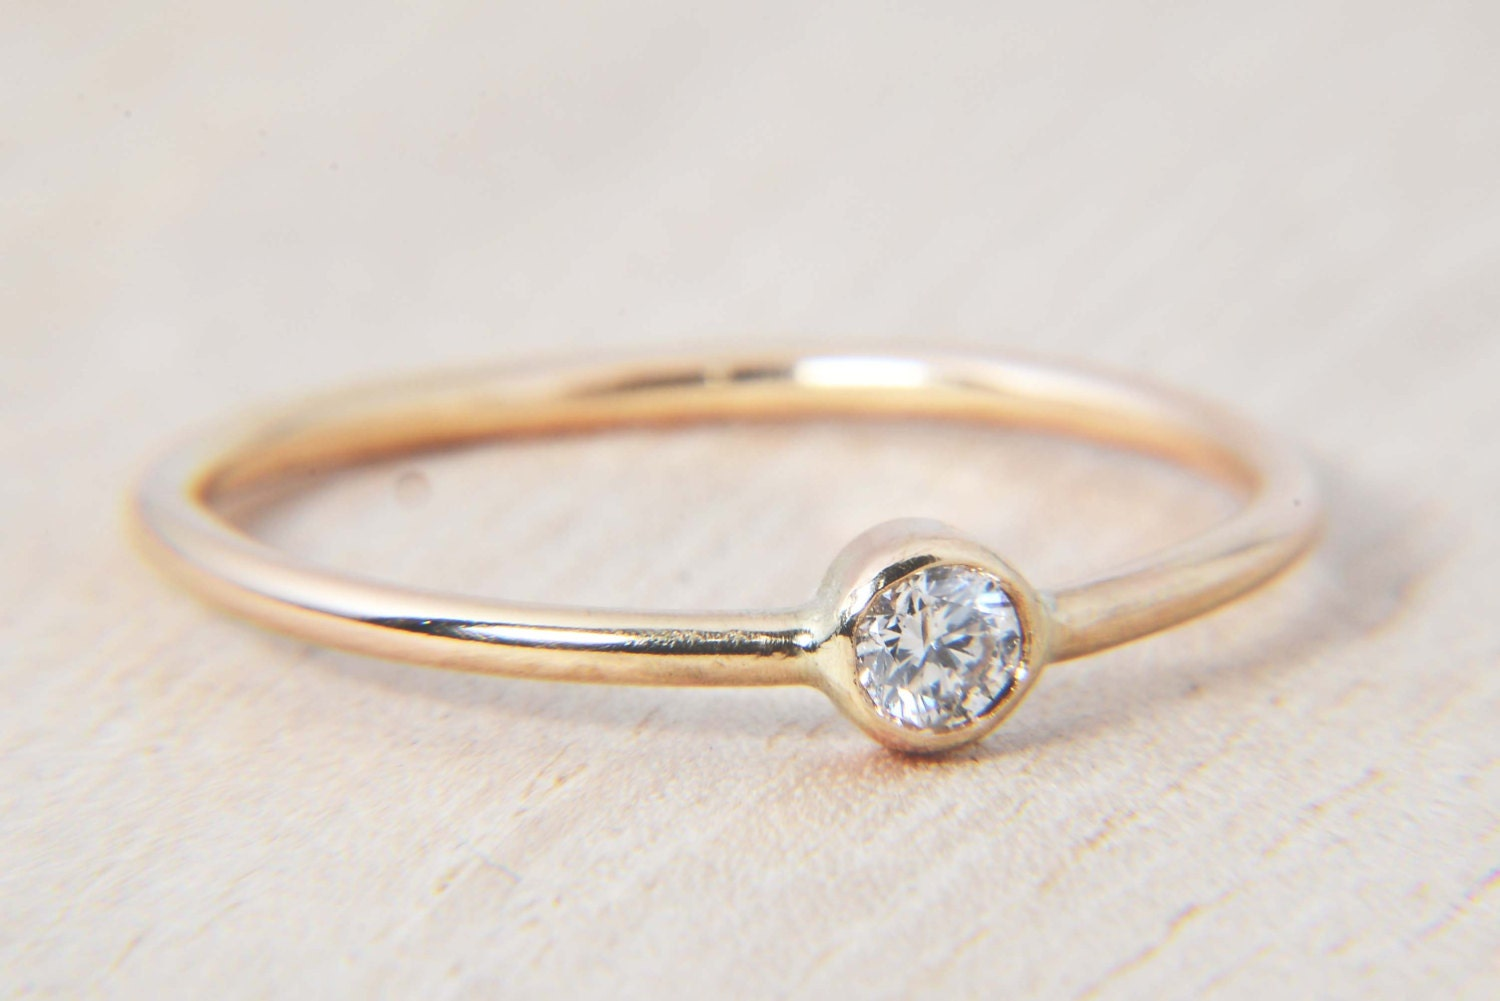 Simple 11ct Diamond Ring in 14K Gold